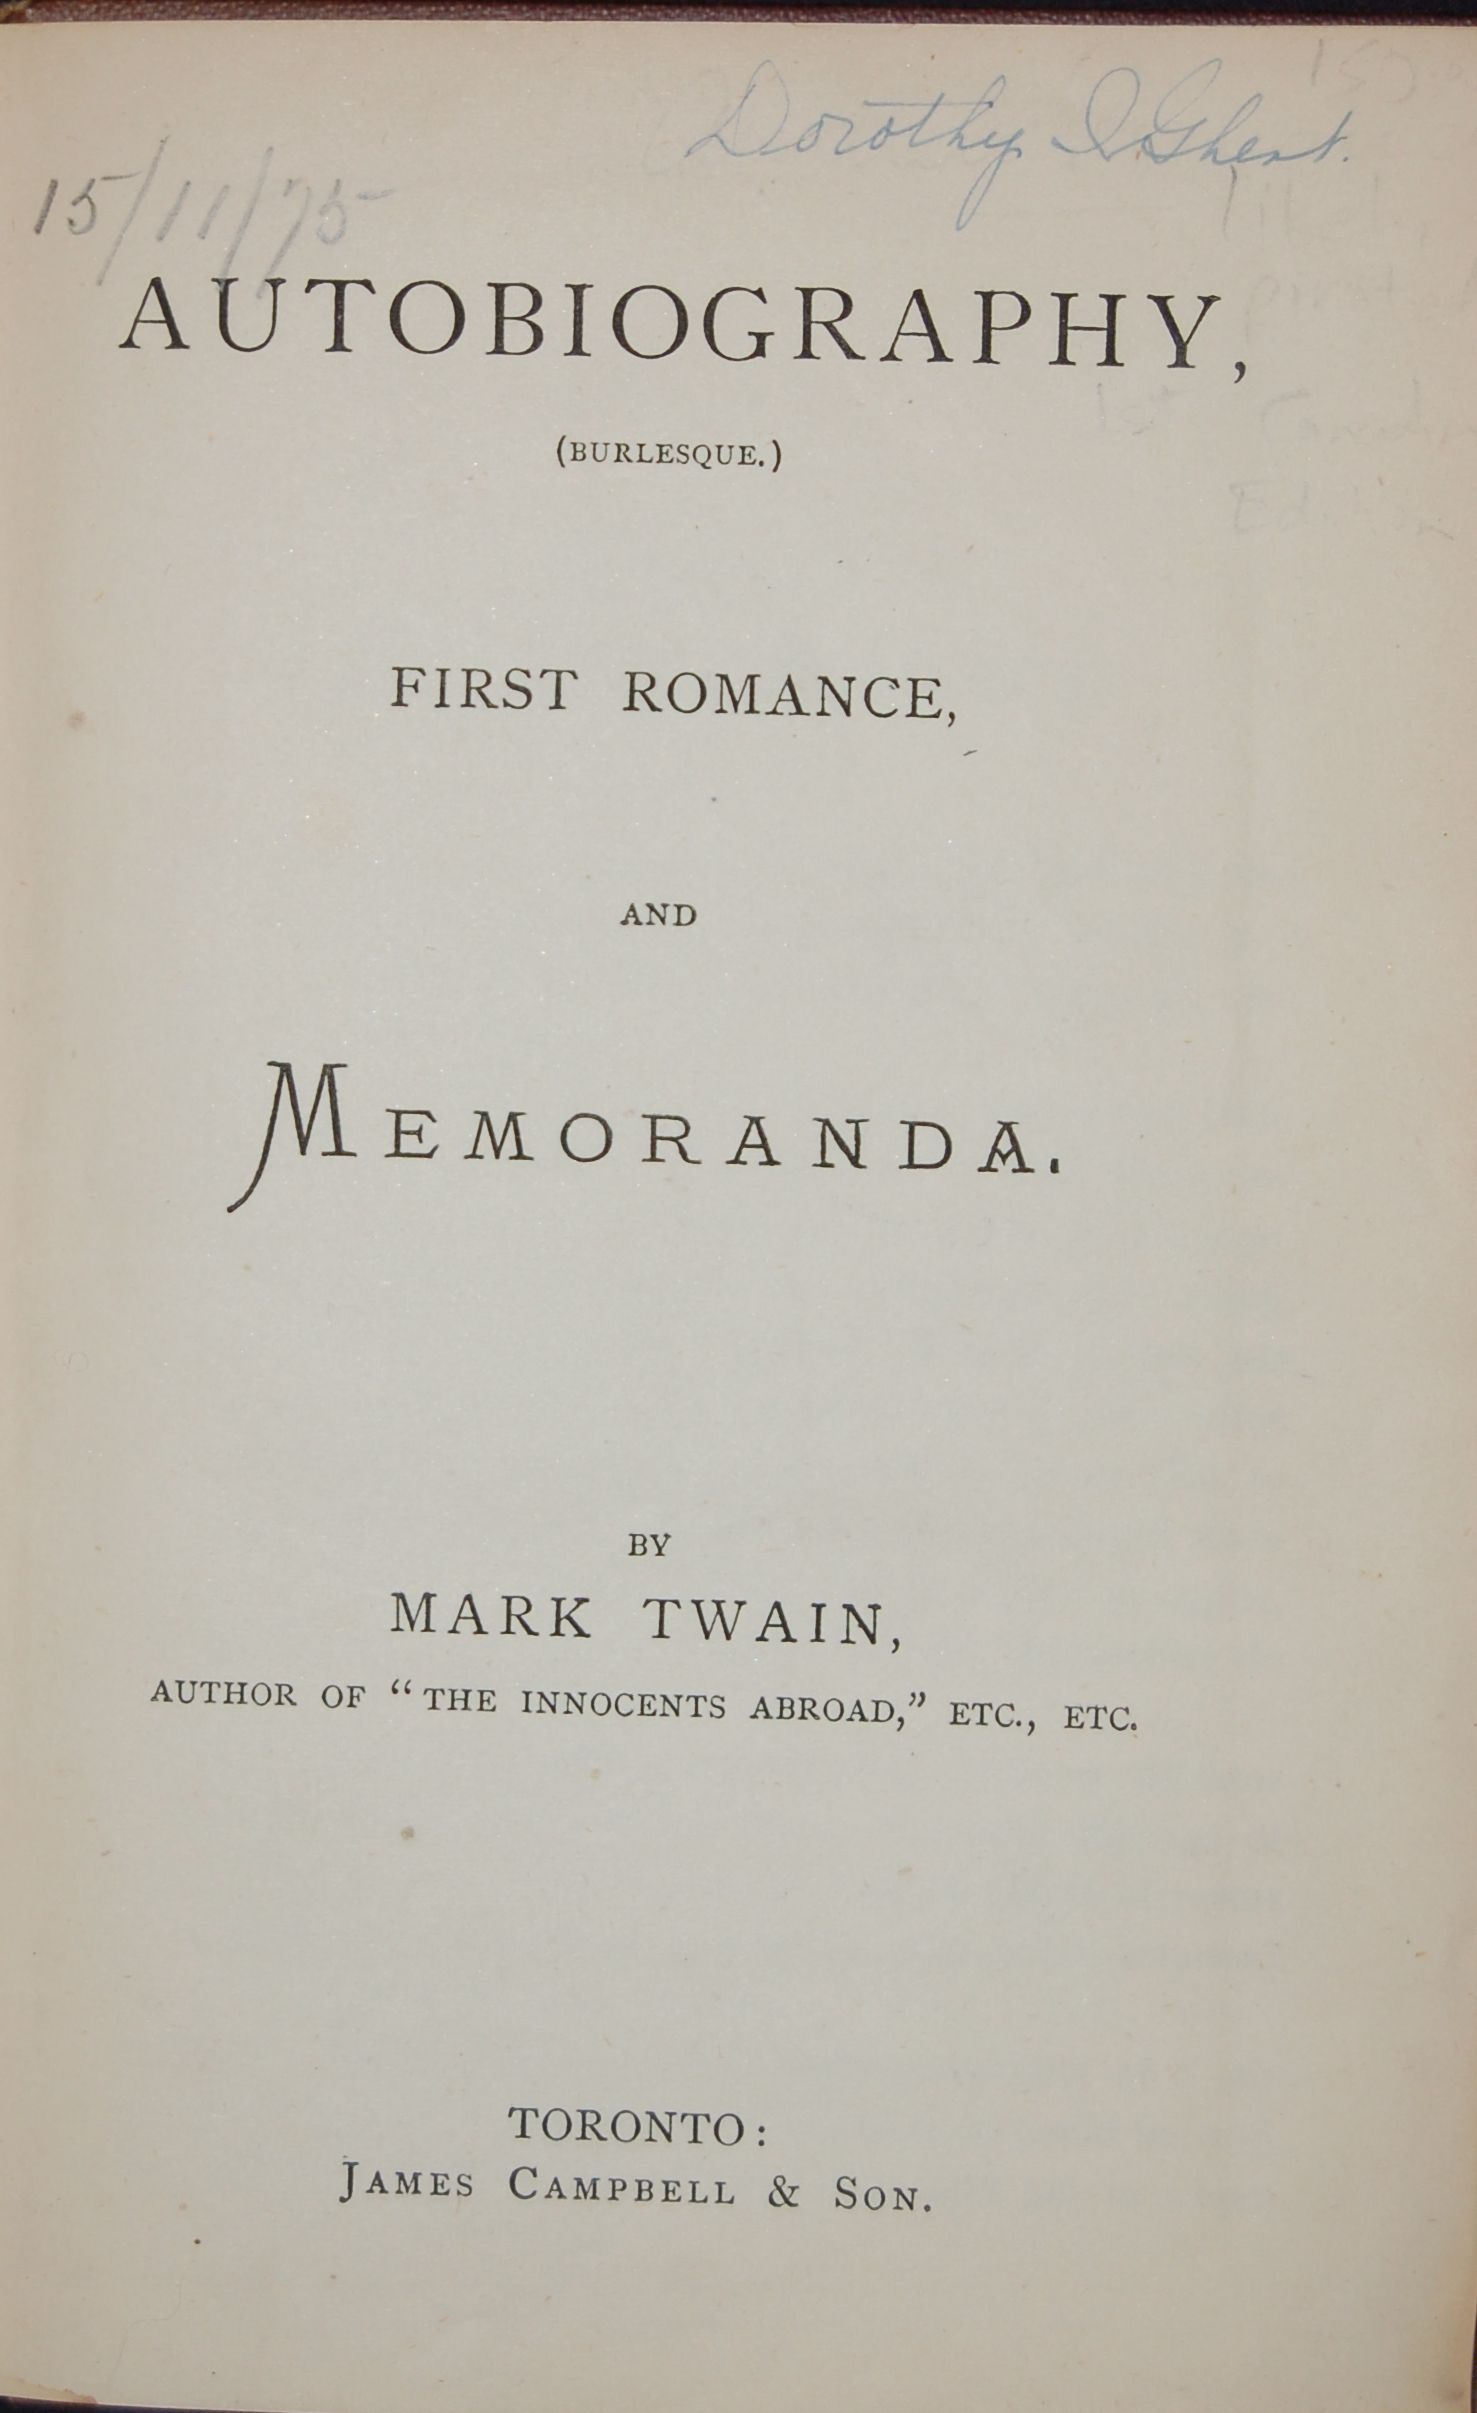 Autobiography, (Burlesque.) First Romance, and Memoranda